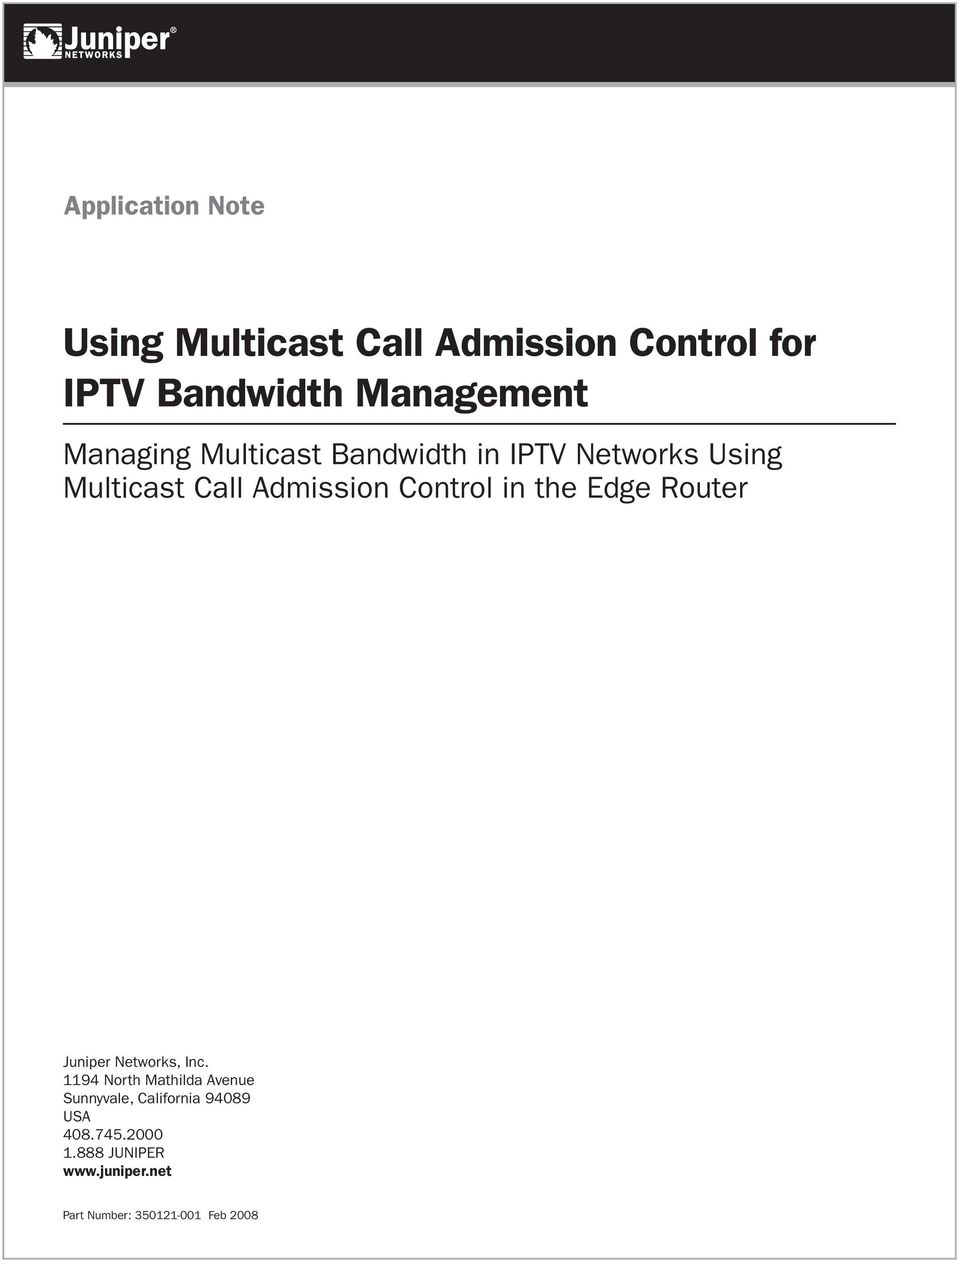 Using Multicast Call Admission Control for IPTV Bandwidth Management